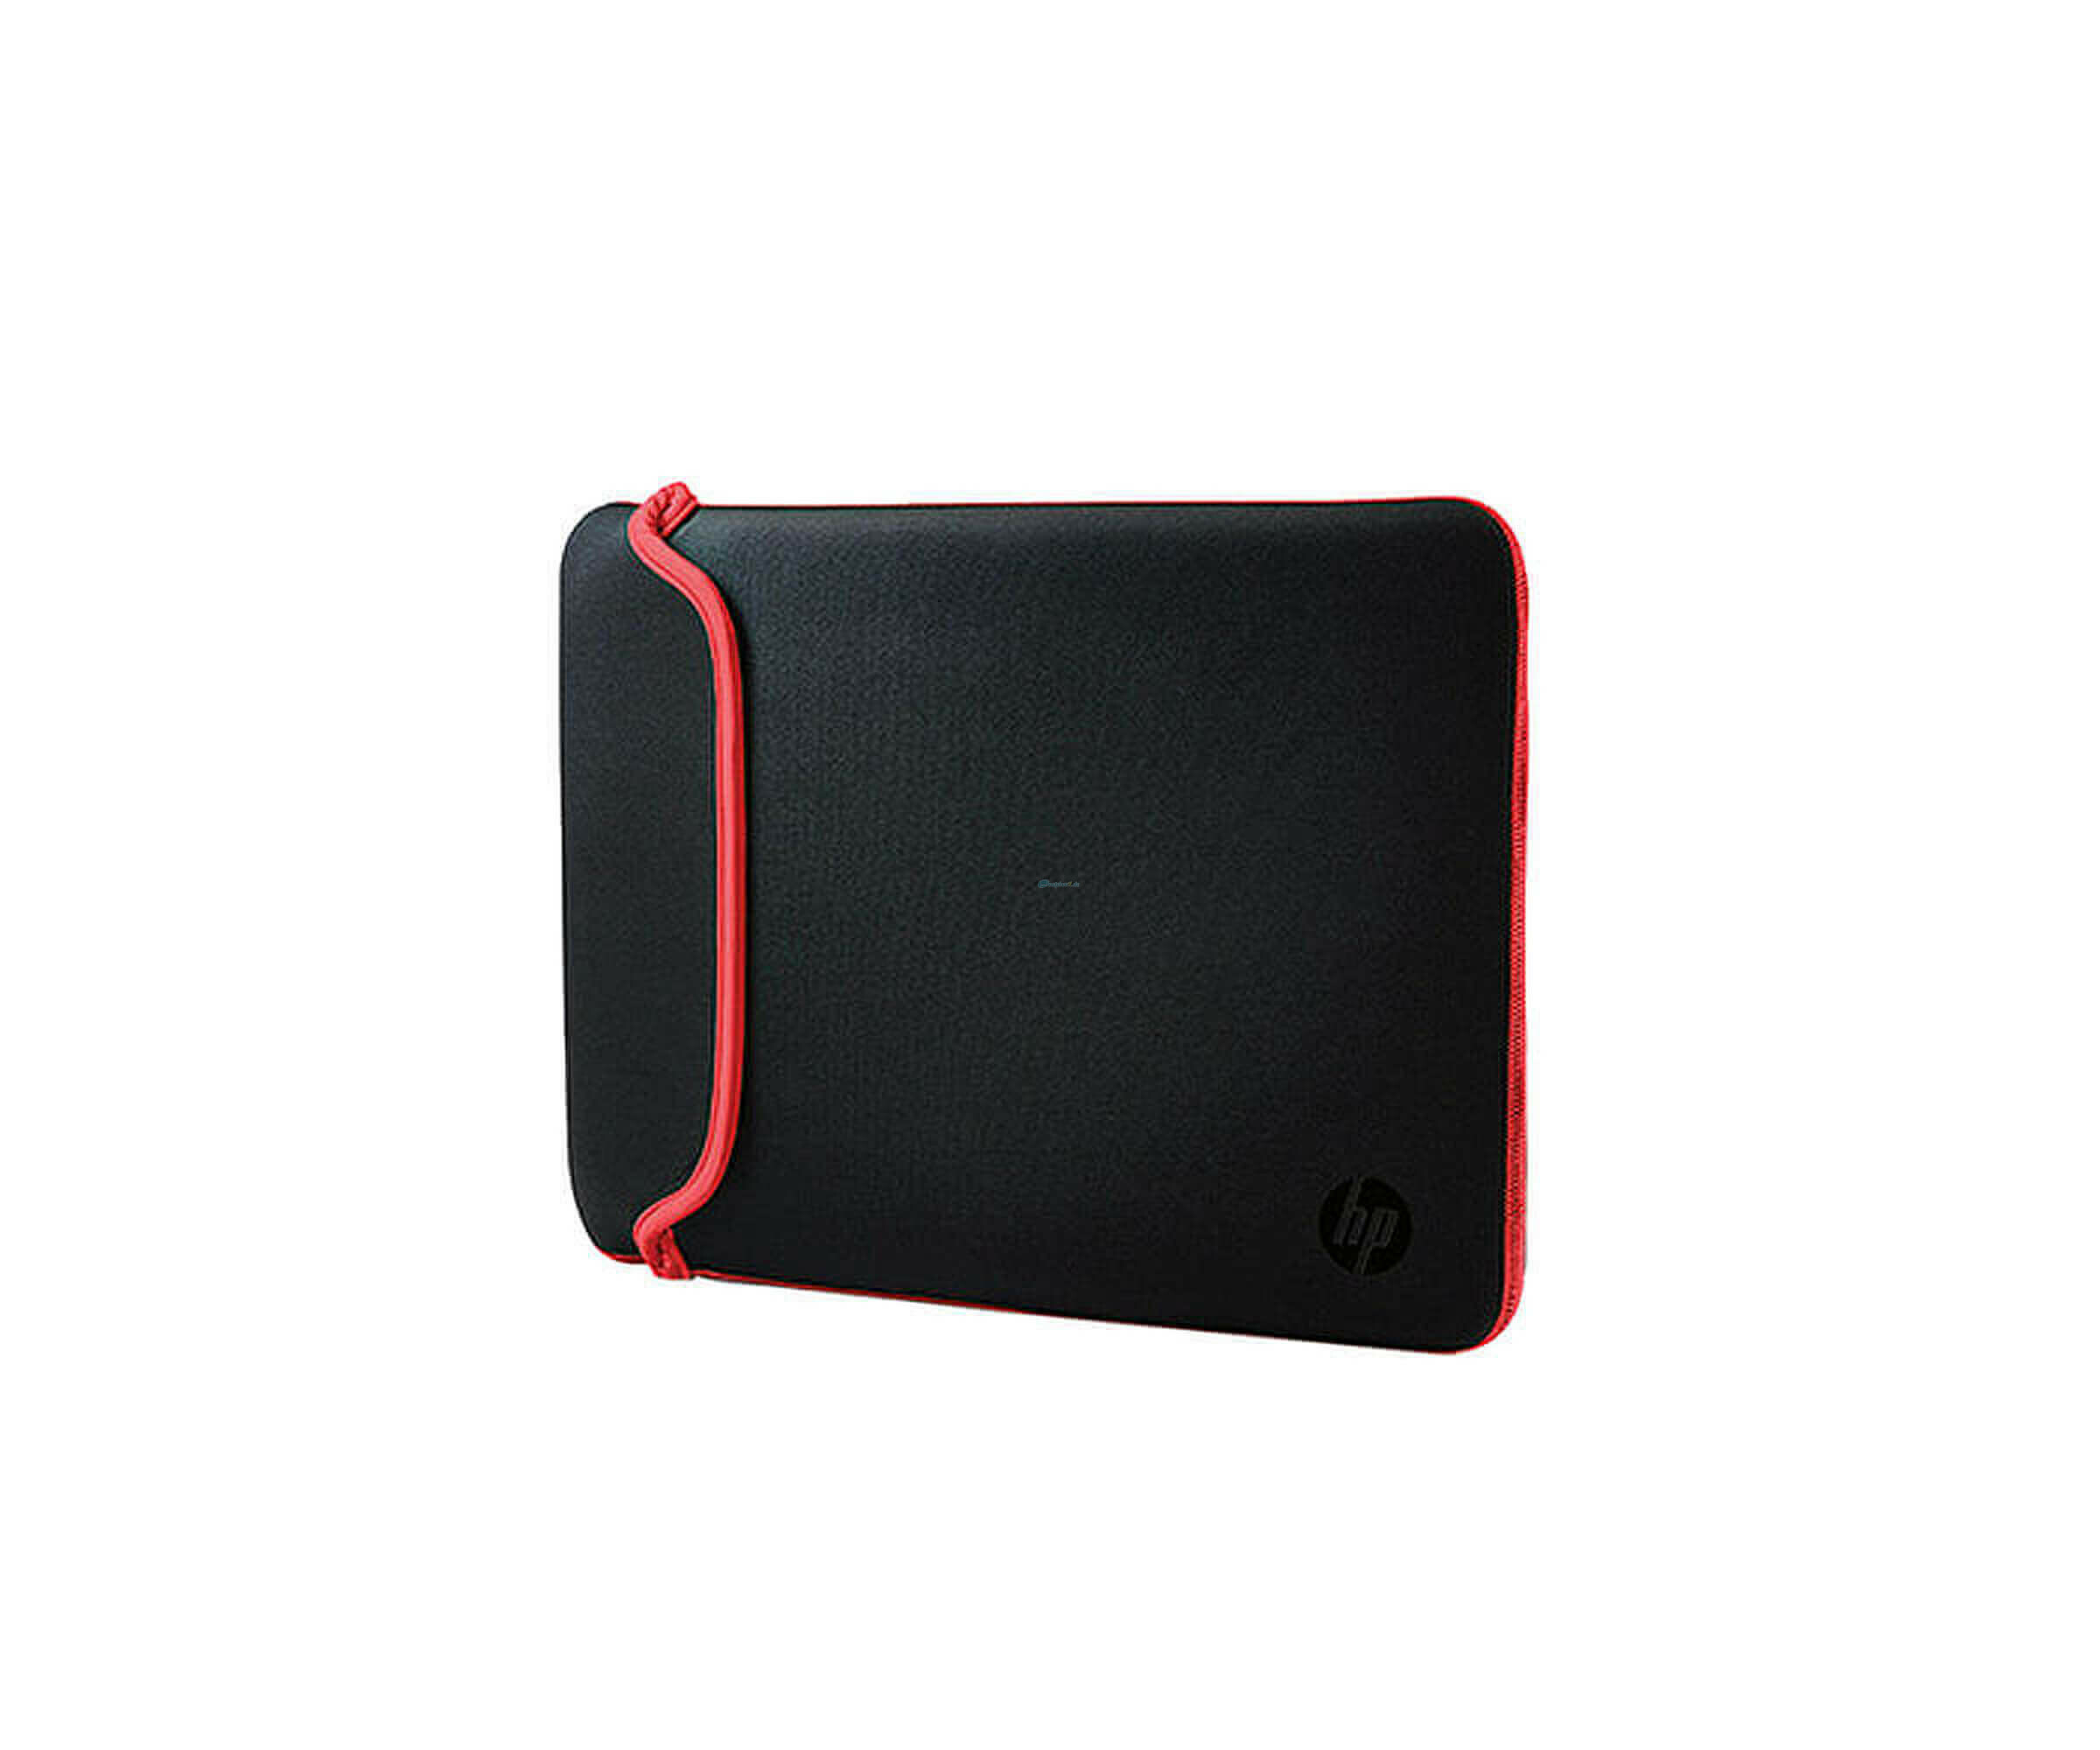 HP Notebook Sleeve - V5C26AA - Notebook-Hülle - Neoprenhülle - 35,6 cm (14) - schwarz, rot